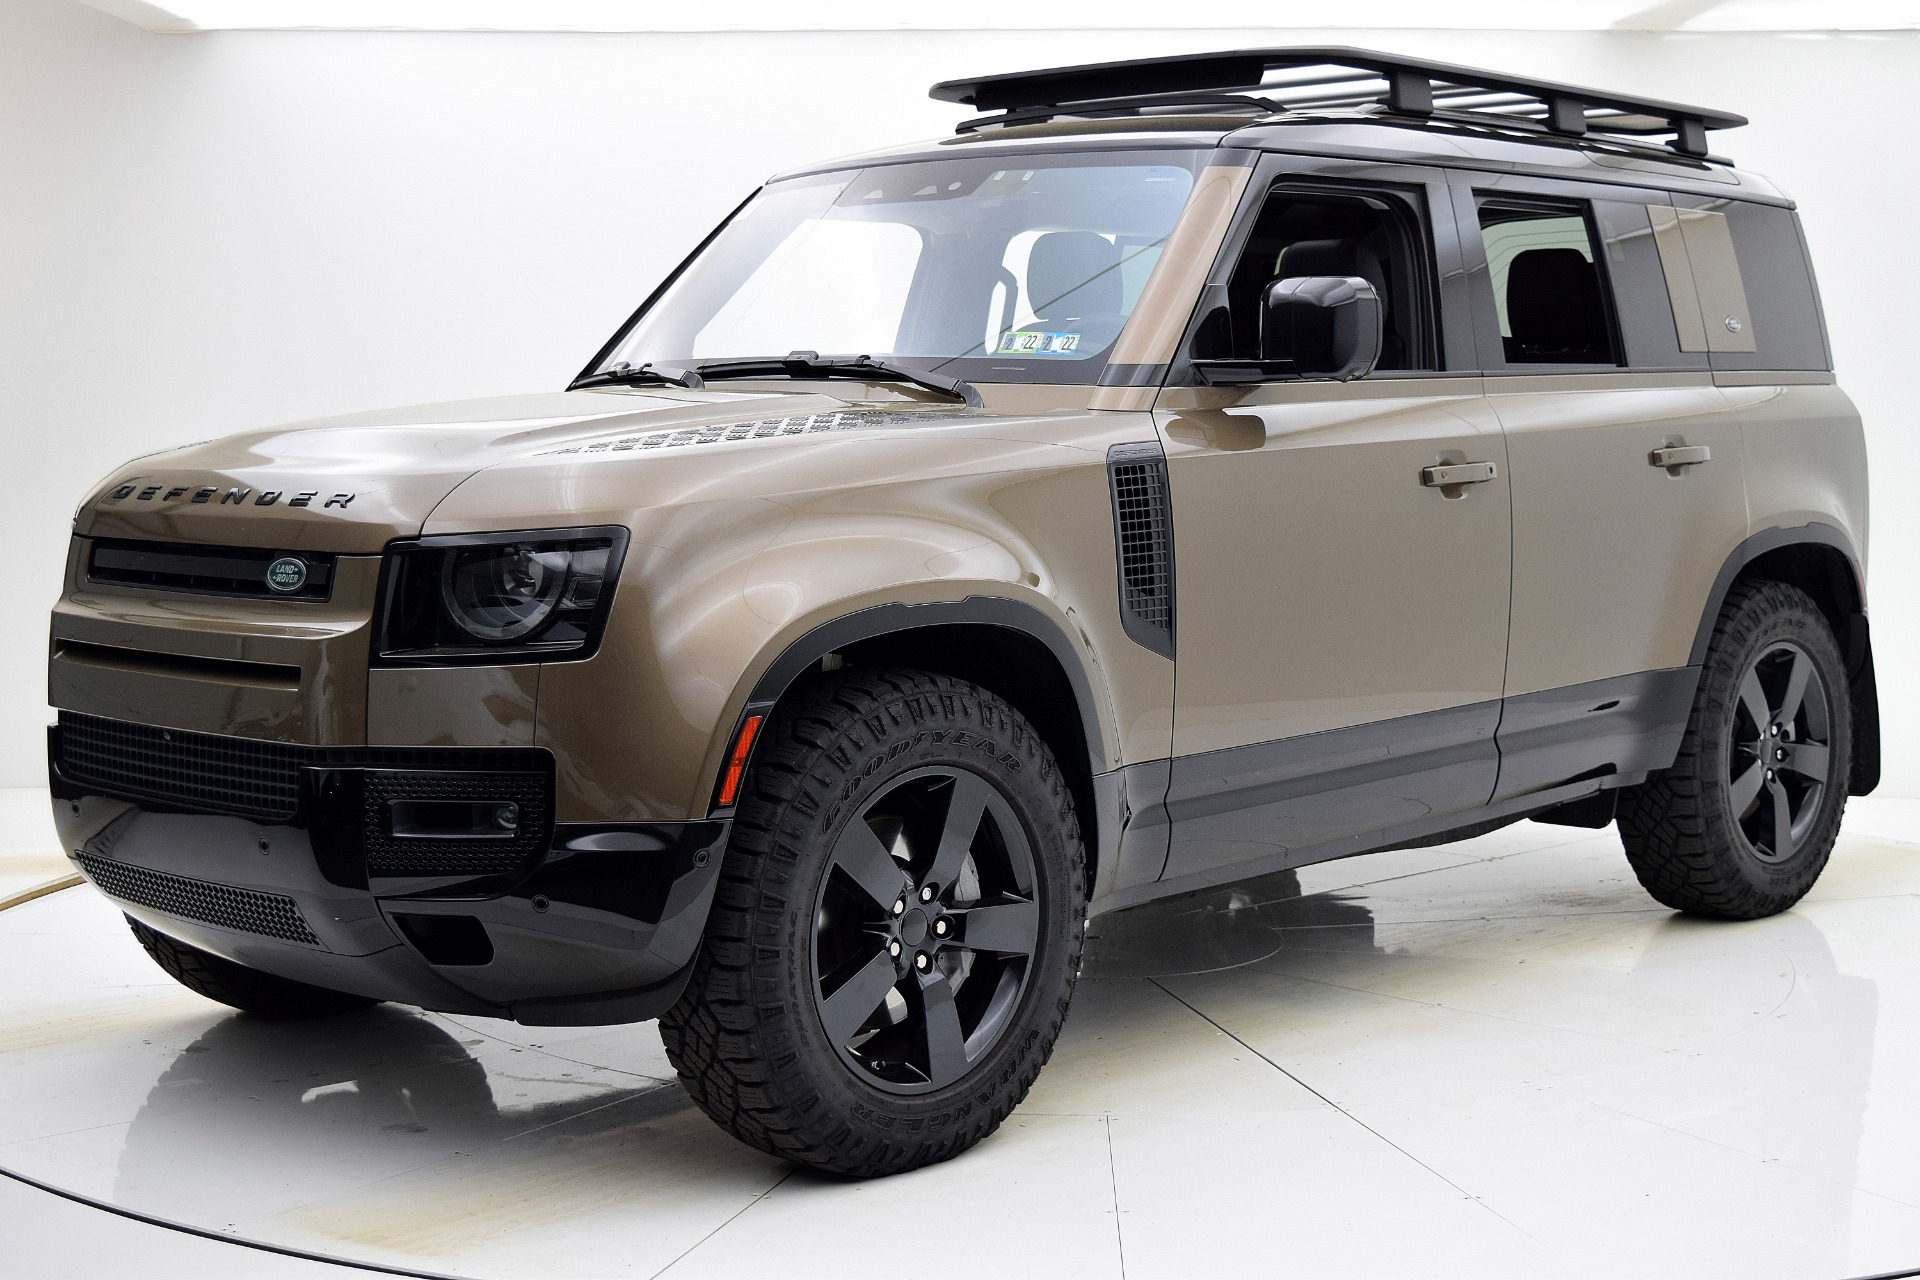 Used 2020 Land Rover Defender First Edition for sale $74,880 at F.C. Kerbeck Lamborghini Palmyra N.J. in Palmyra NJ 08065 2